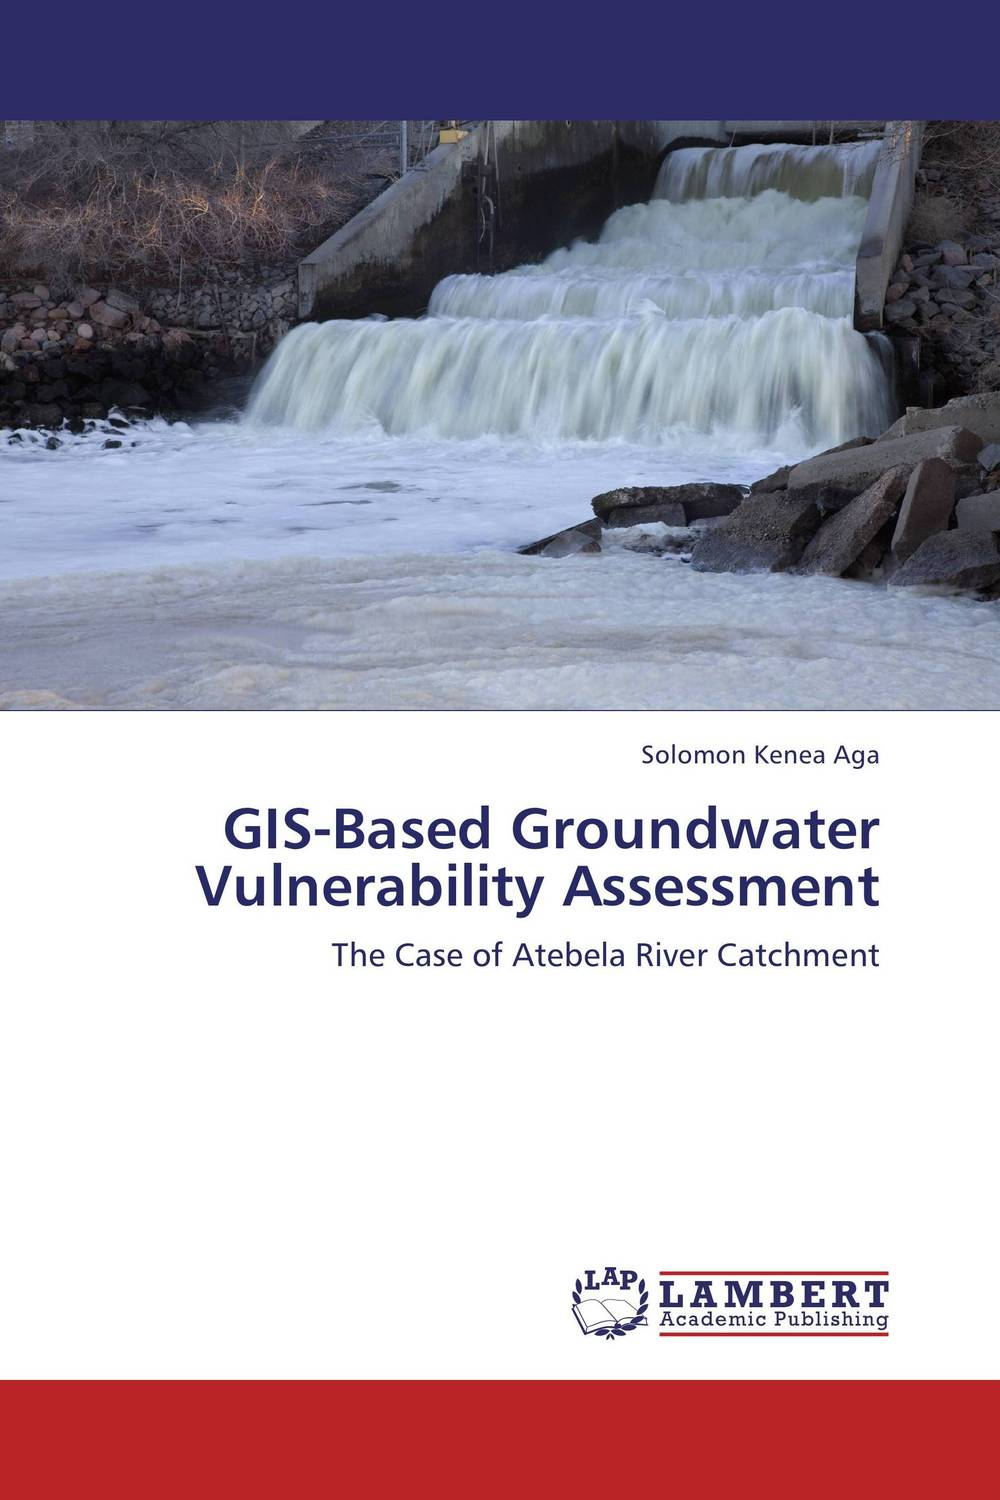 GIS-Based Groundwater Vulnerability Assessment nicholas p cheremisinoff groundwater remediation and treatment technologies